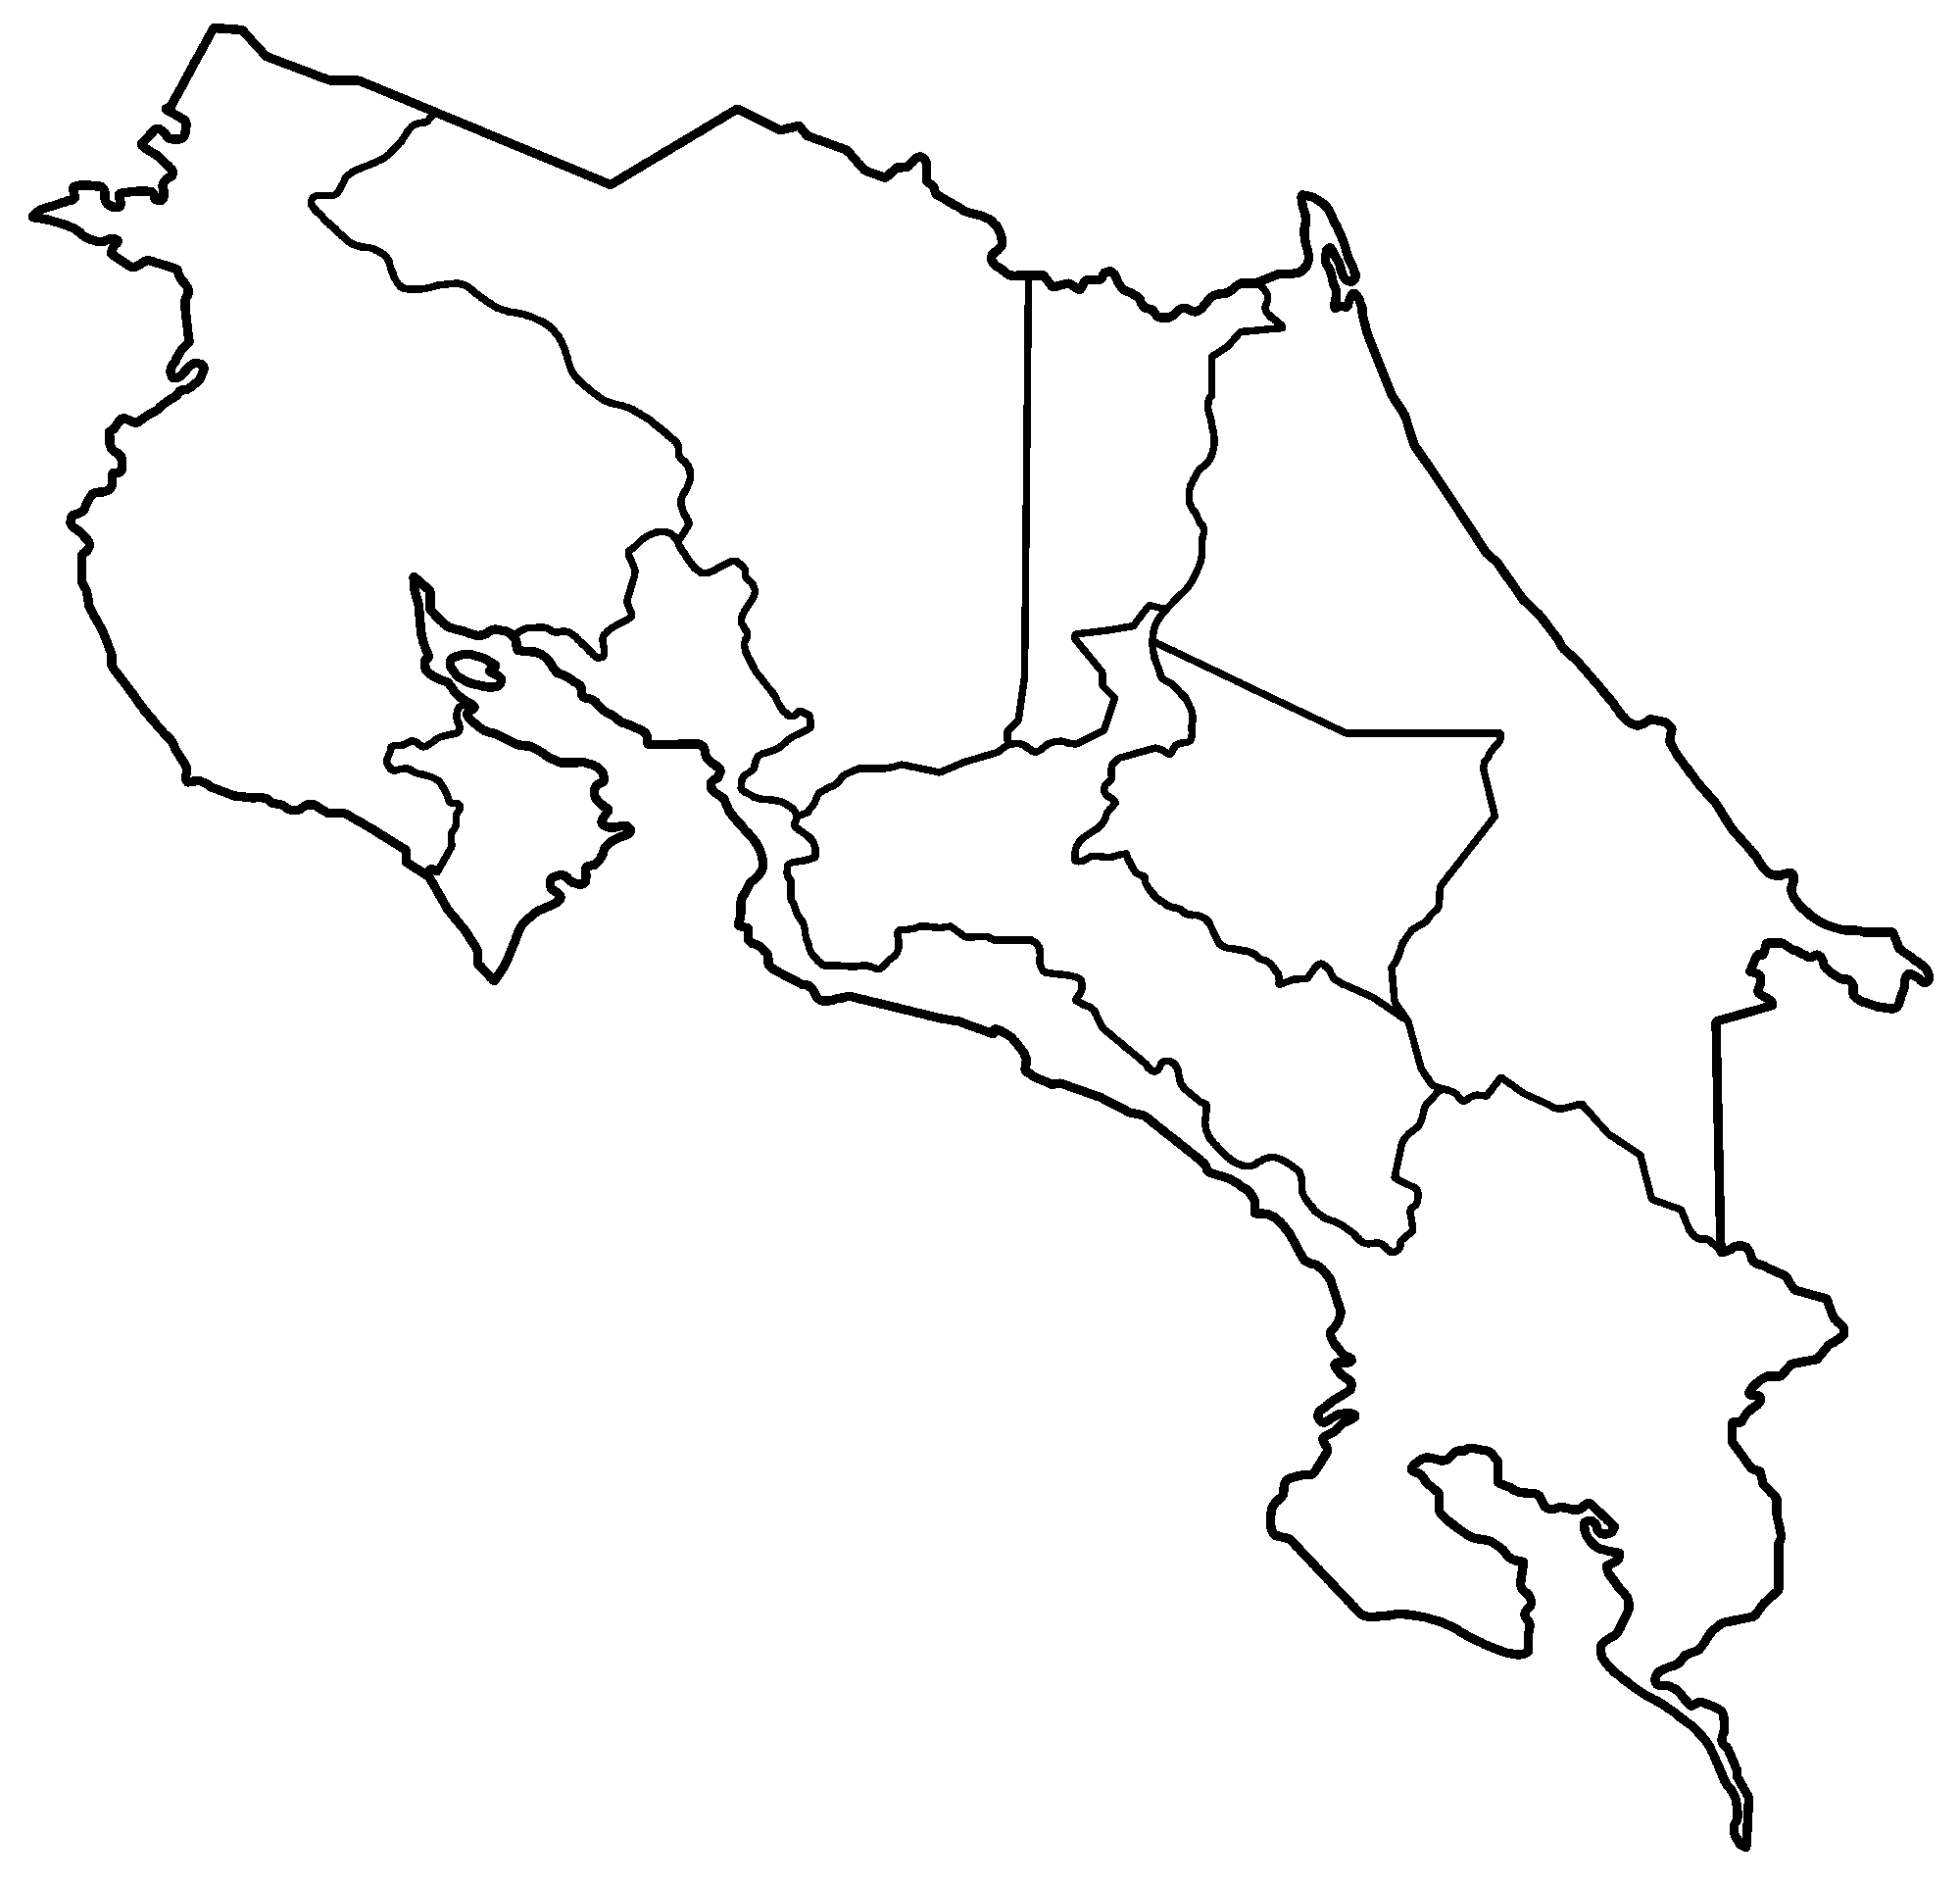 Costa Rica Provinces Blank Mapsofnet - Costa rica regions map